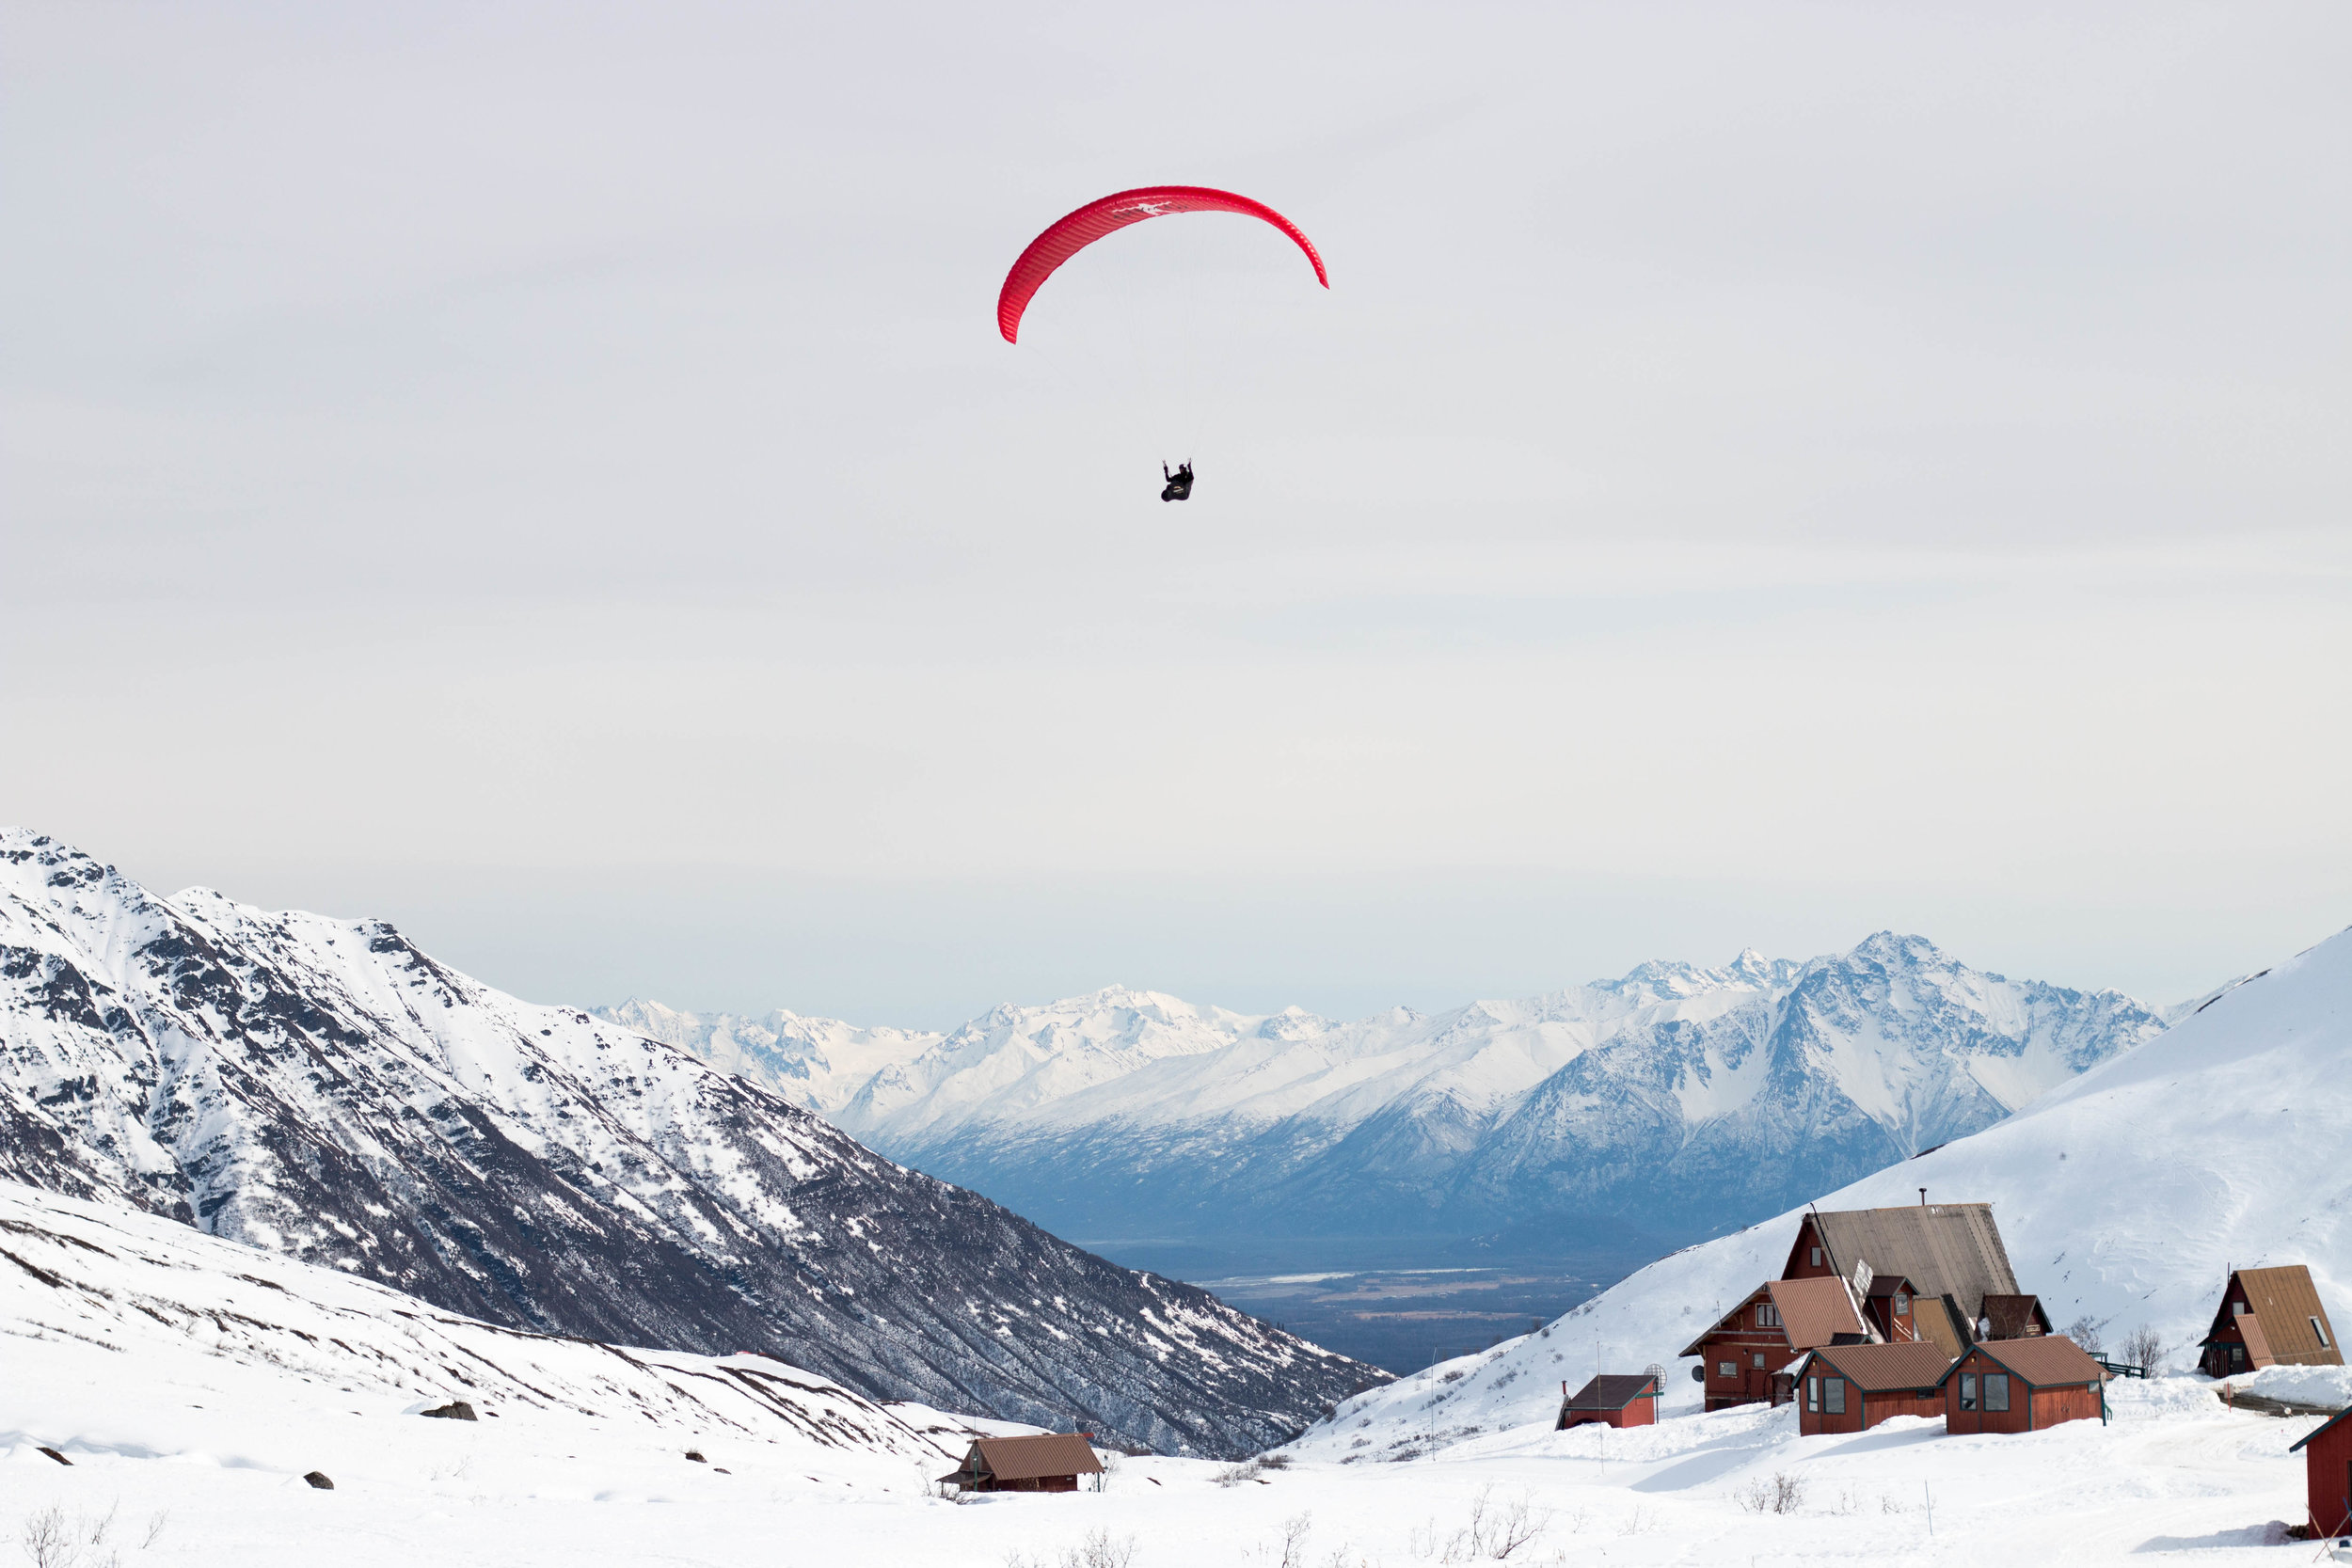 Alask Luke Webster photography adventure paragliding